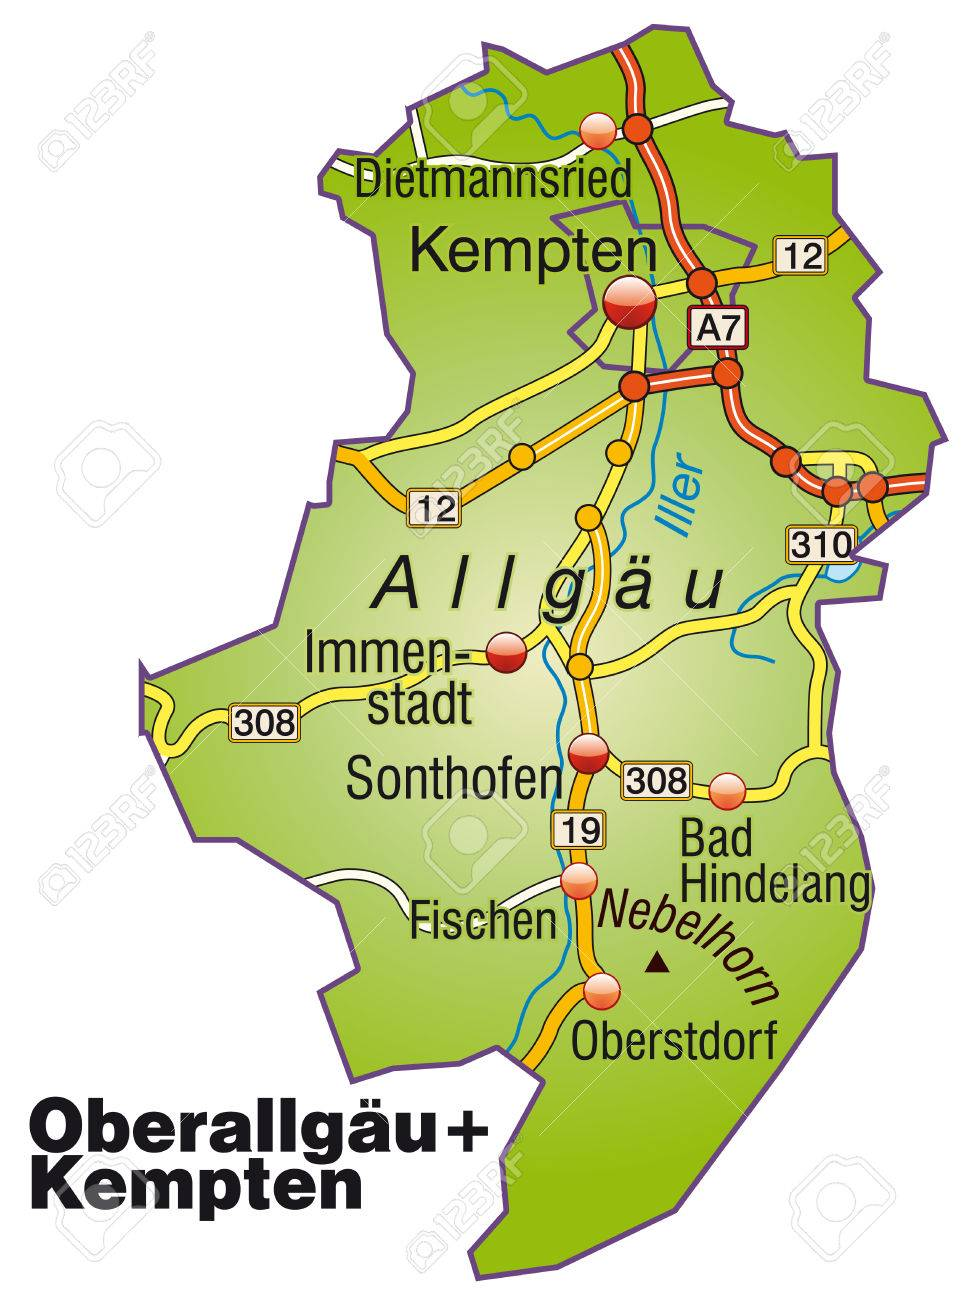 Map Of Oberallgaeu Kempten With Highways Royalty Free Cliparts